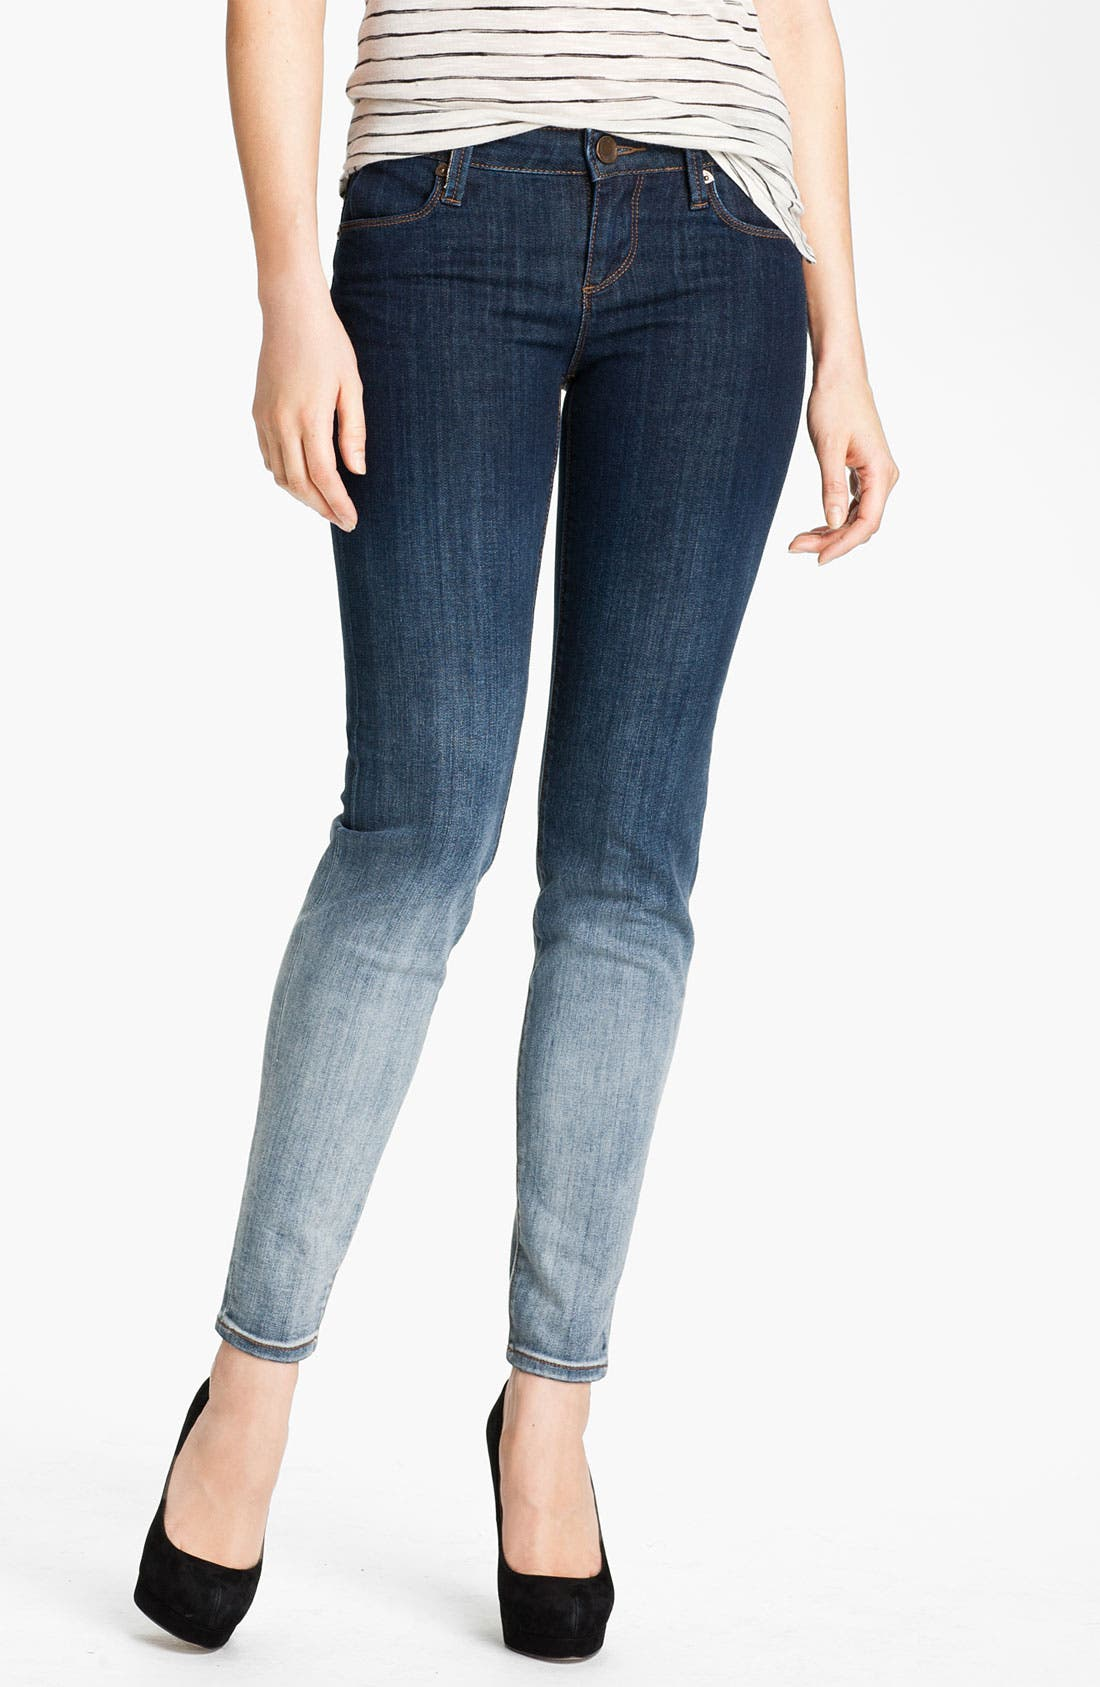 Main Image - KUT from the Kloth 'Jennifer' Skinny Jeans (Amazing) (Online Exclusive)